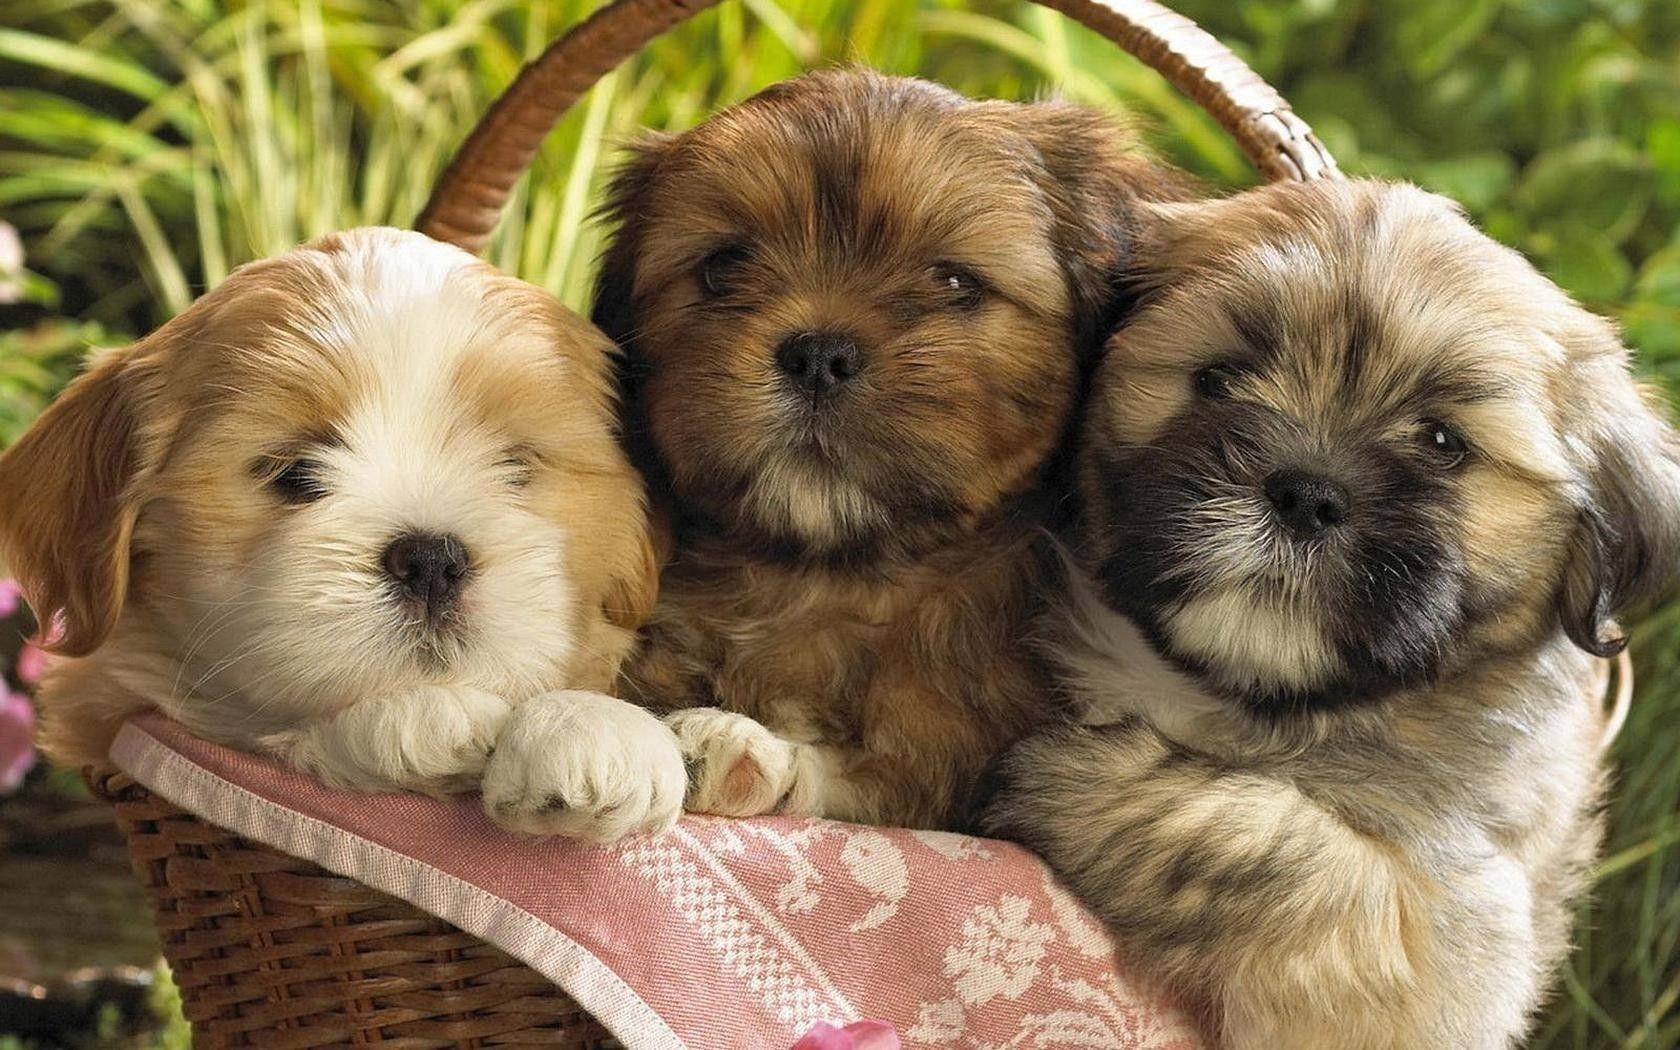 Puppies Desktop Wallpapers FREE on Latoro